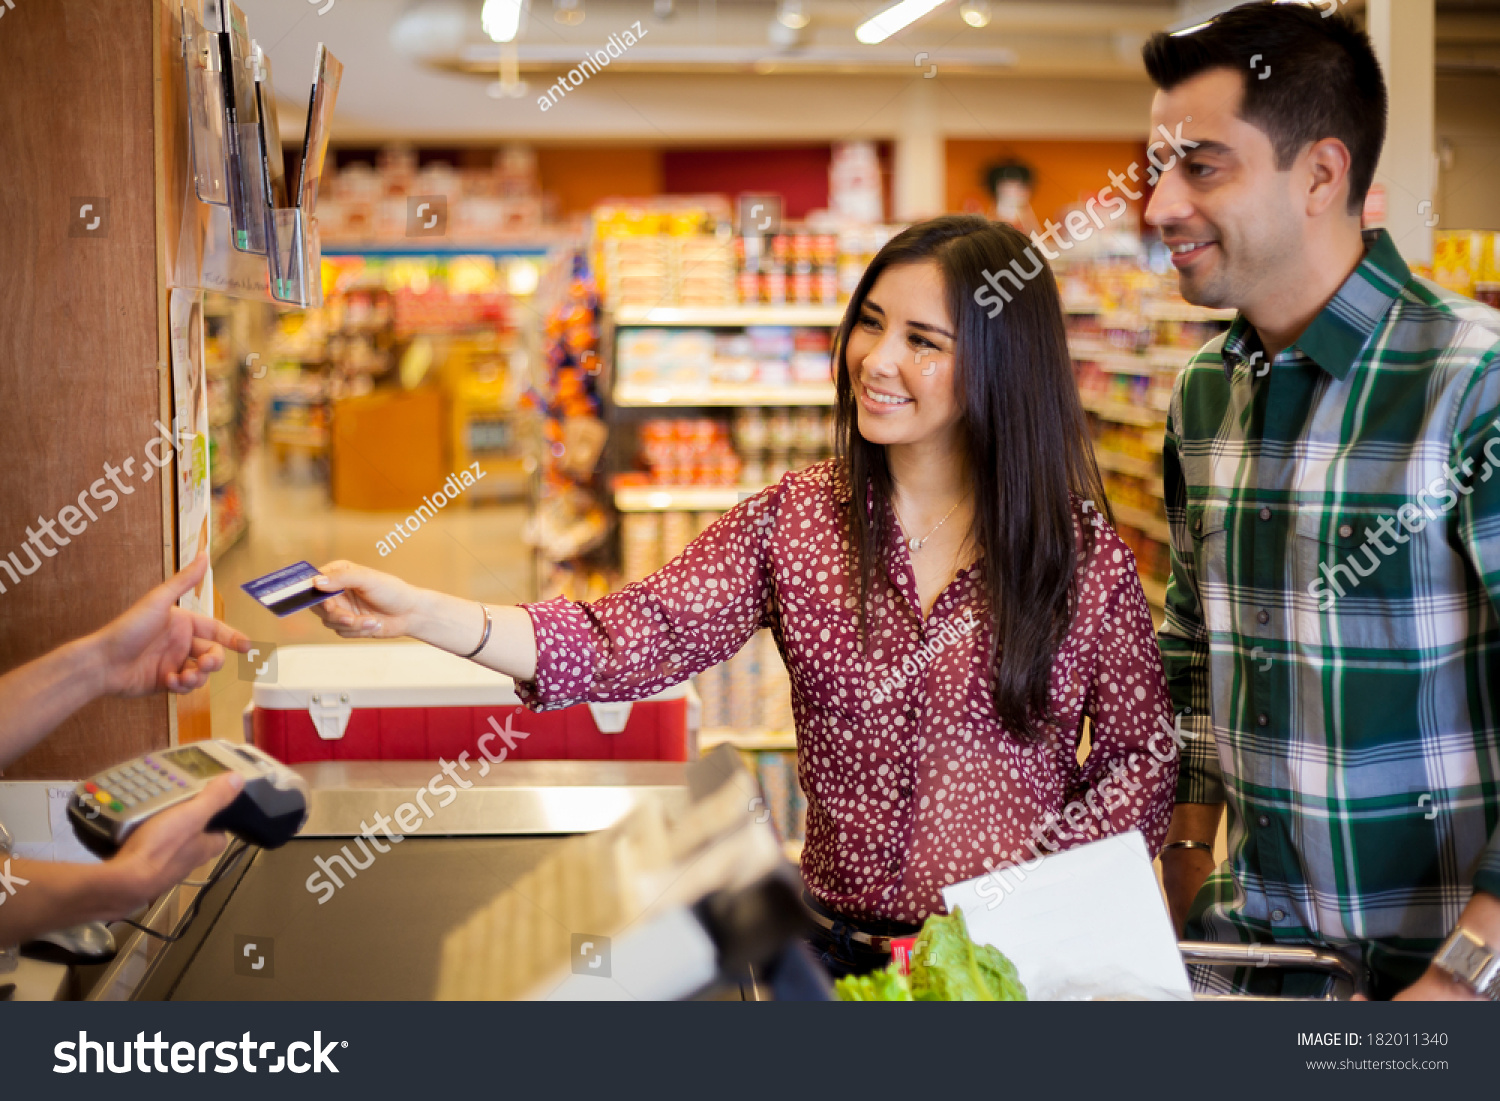 stock-photo-beautiful-young-brunette-and-her-boyfriend-buying-some-groceries-at-the-supermarket-and-paying-with-182011340.jpg